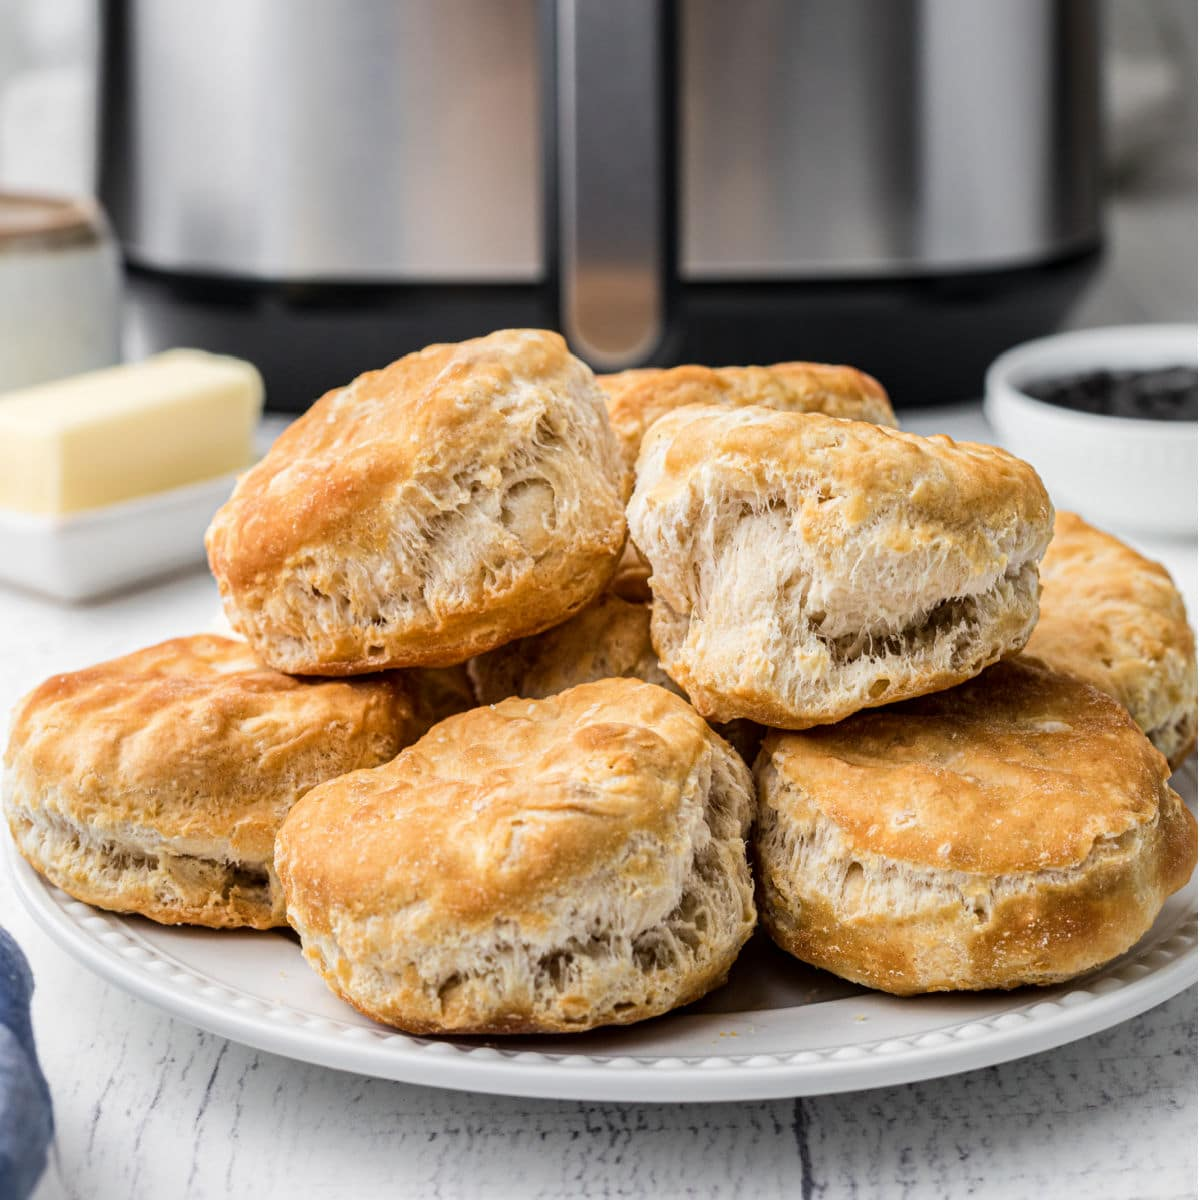 a plate of biscuits piled high, in front of an air fryer